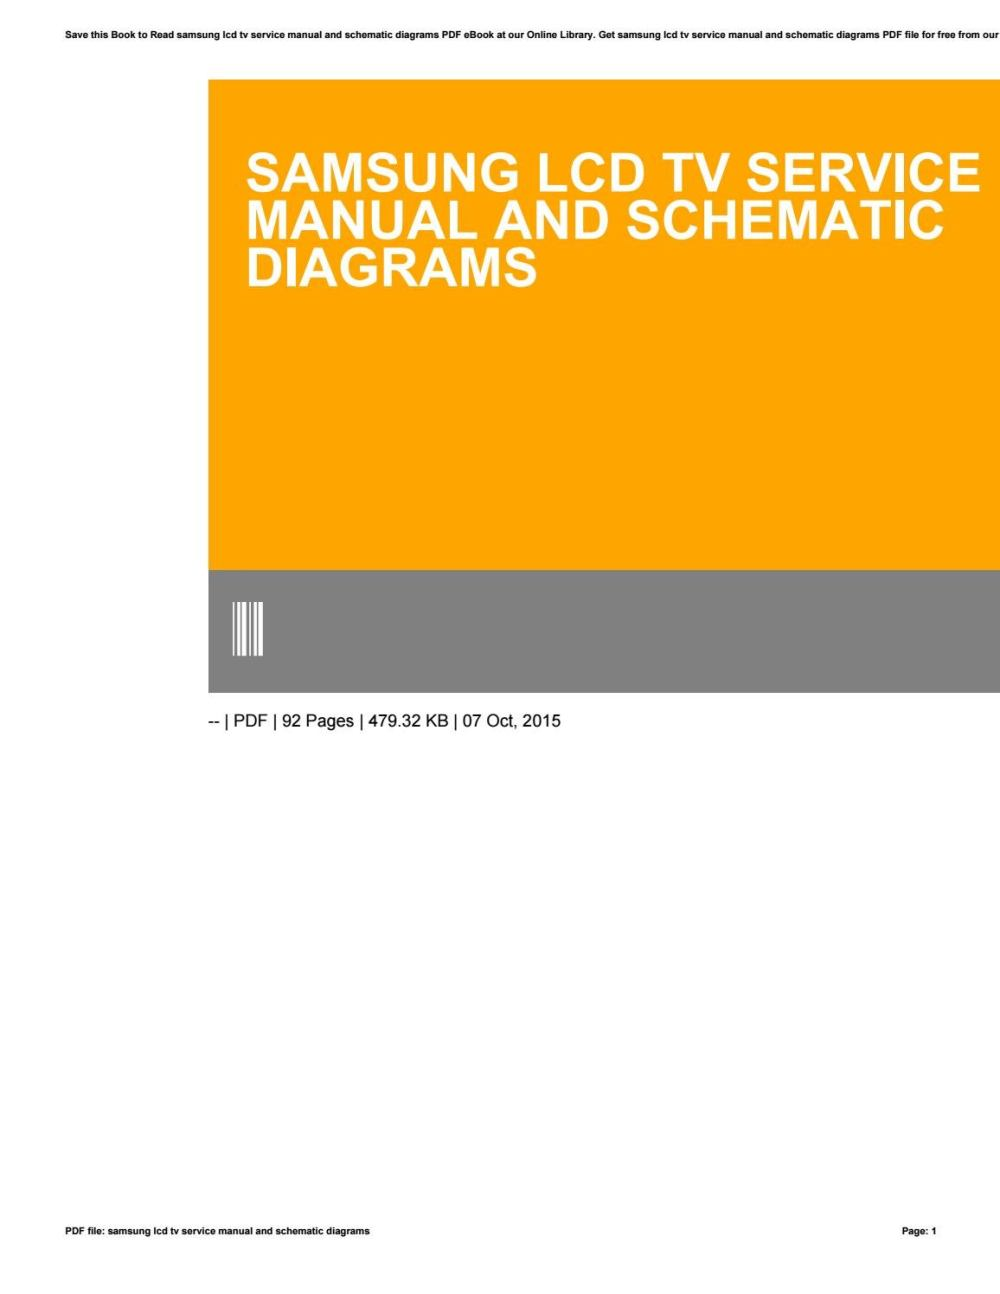 medium resolution of samsung lcd tv service manual and schematic diagrams by freealtgen17 issuu